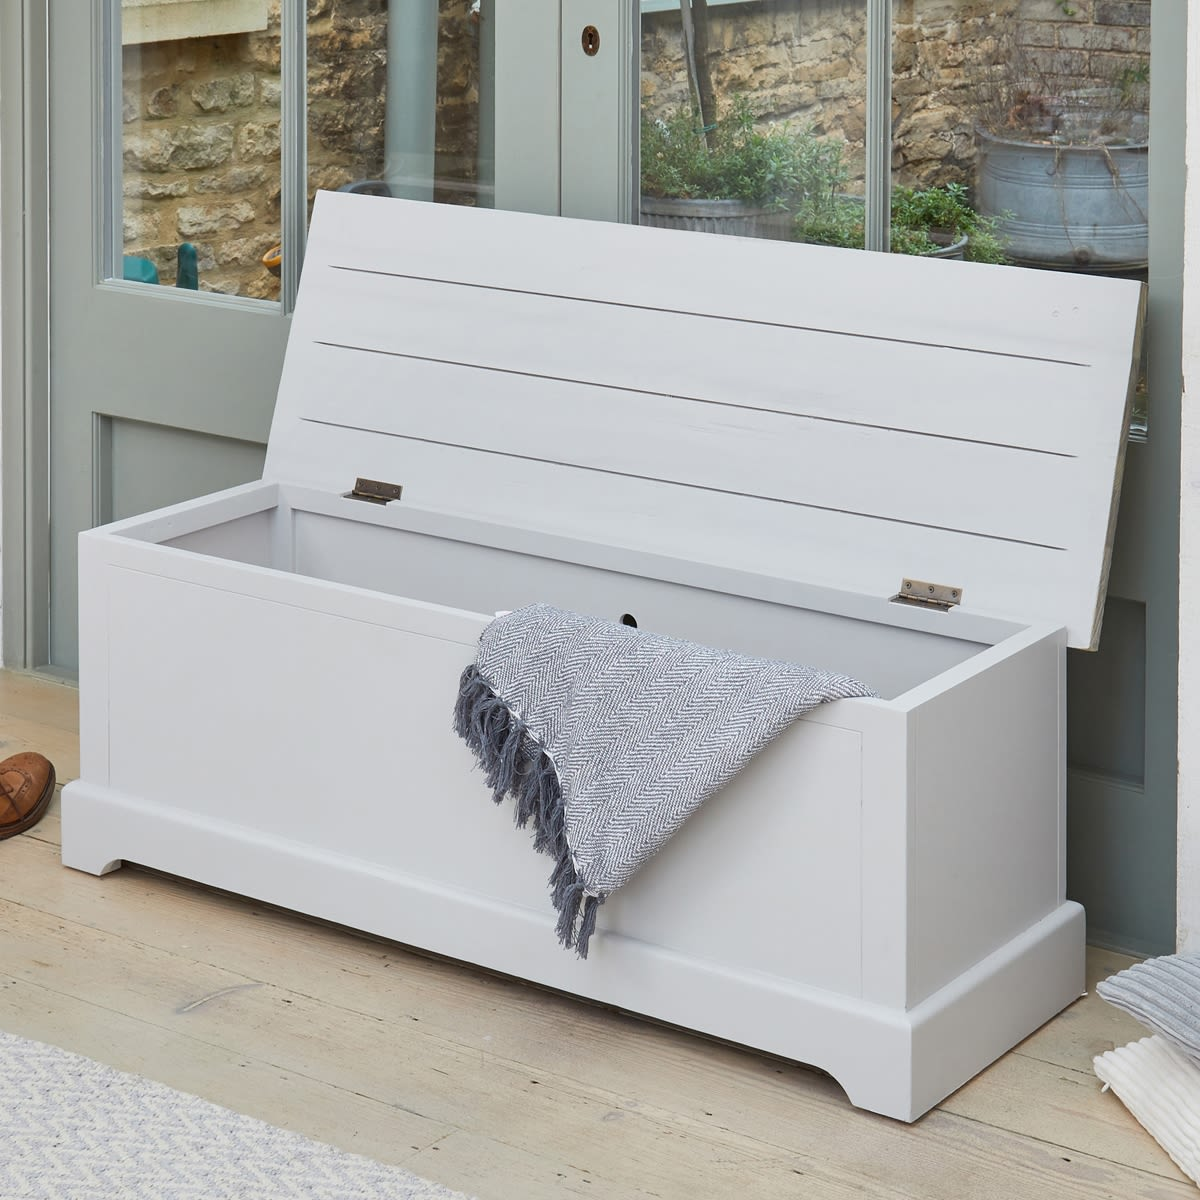 Strange Signature Grey Hallway Storage Bench Caraccident5 Cool Chair Designs And Ideas Caraccident5Info